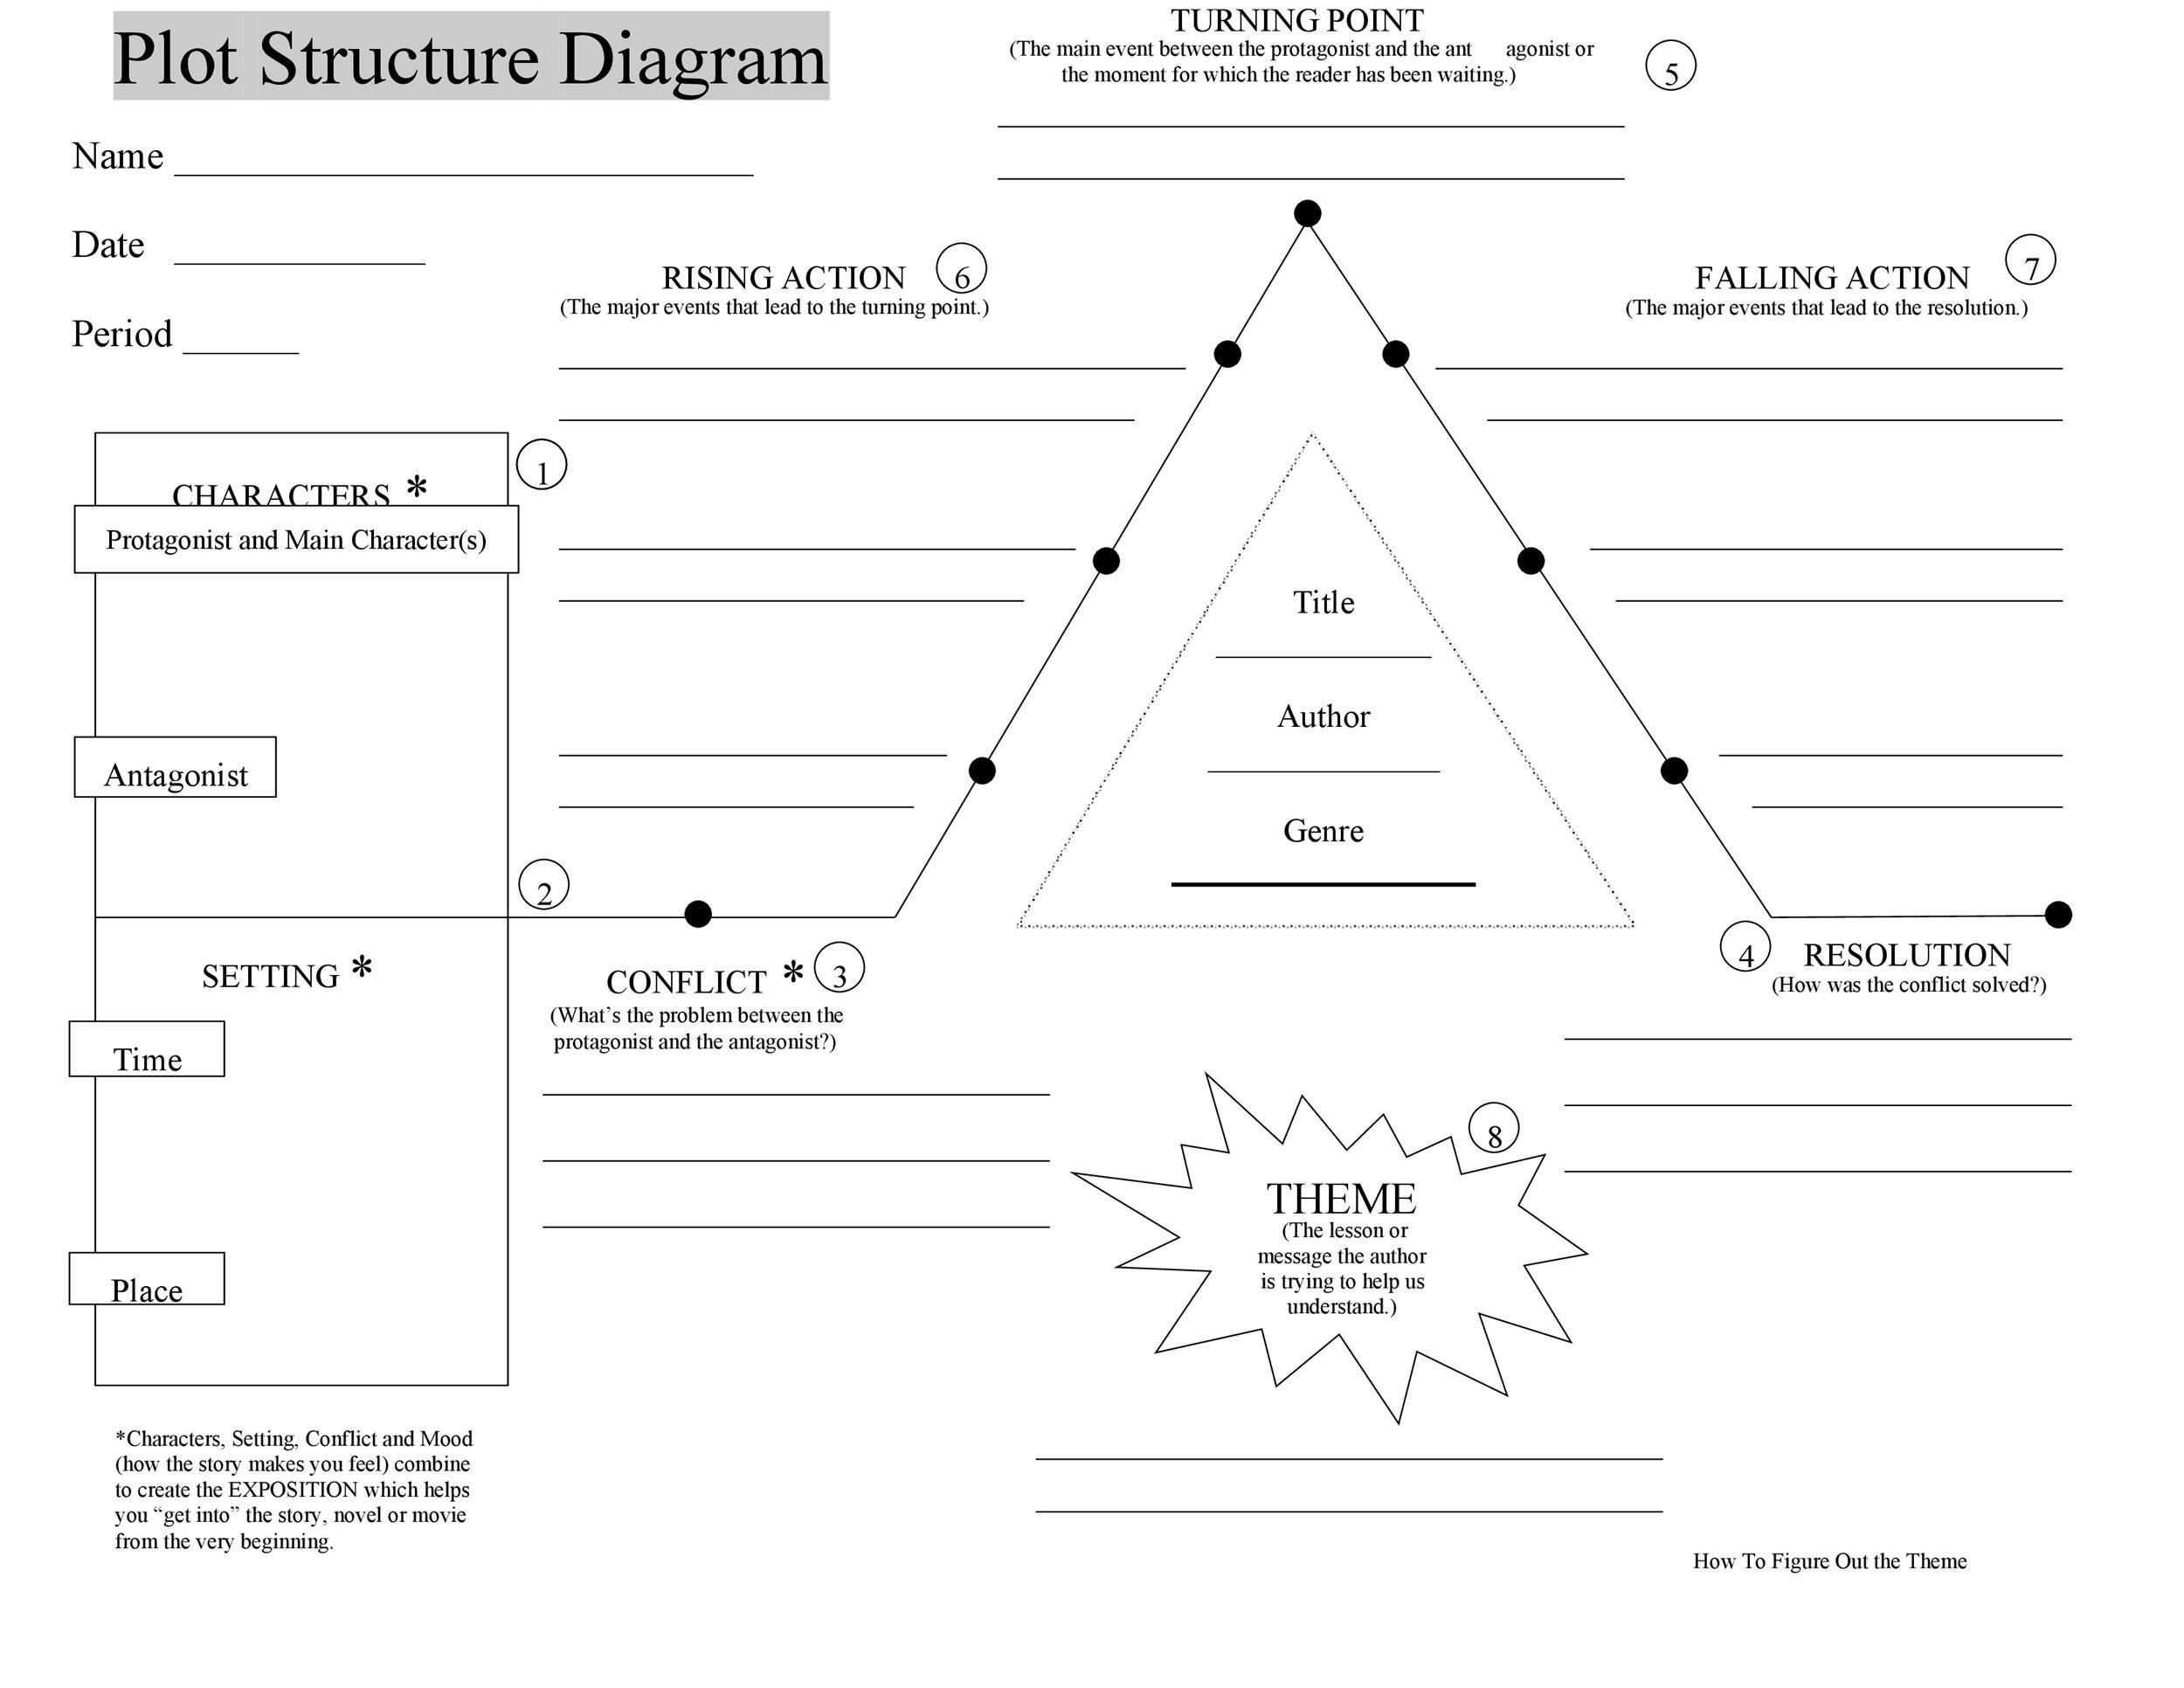 Manuals Plot Diagram Template With Definitions Pdf Full Version Hd Quality With Definitions Tvremotemanuals Casaledelclemente It